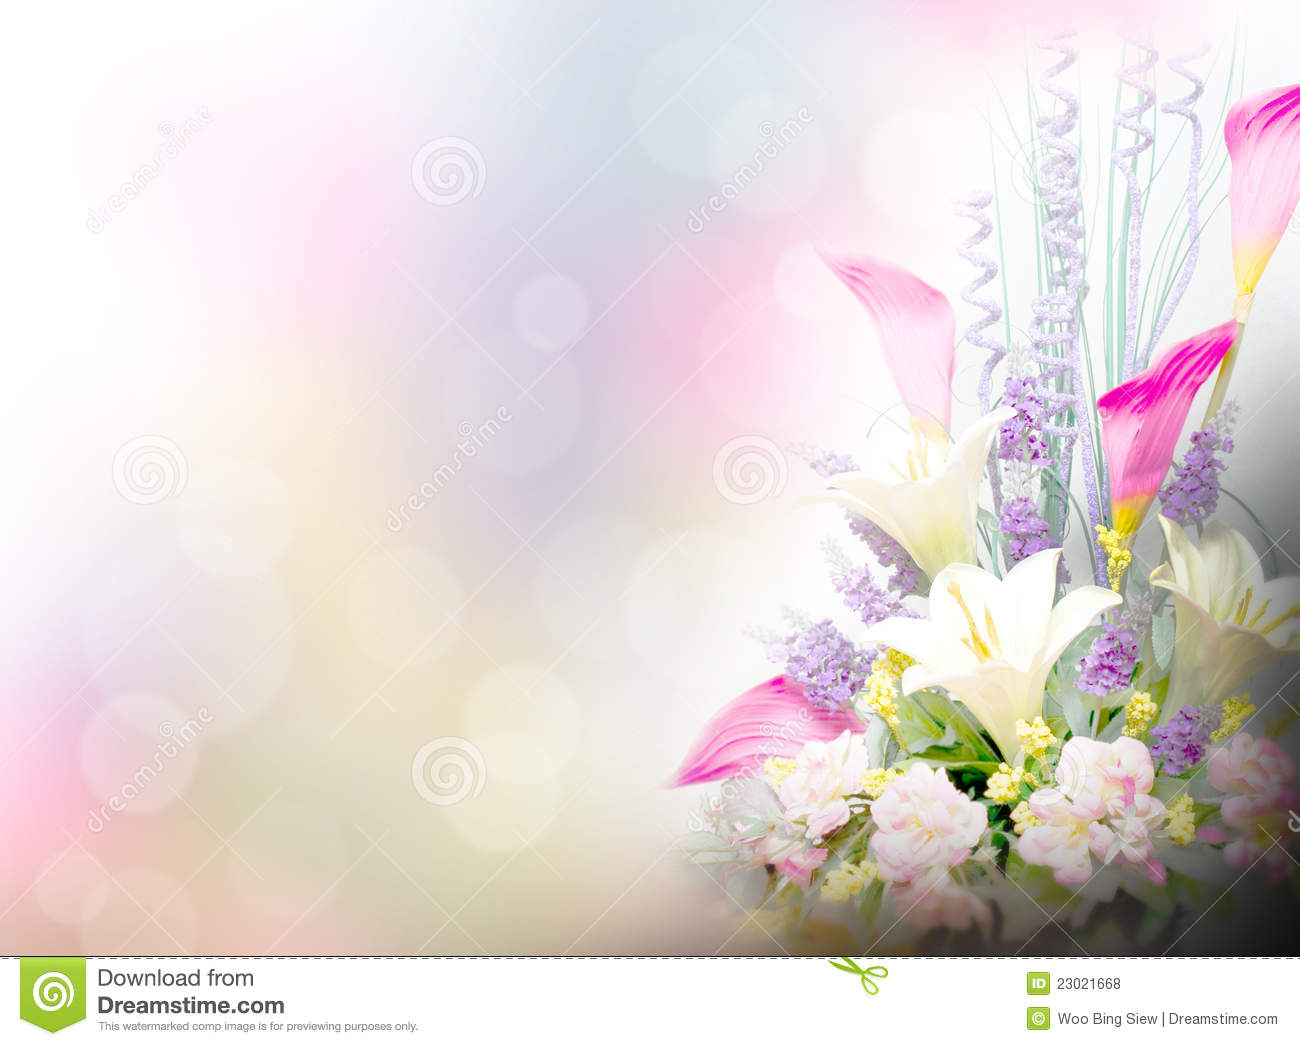 Lily Flowers Background Stock Photo Image Of Lighting 23021668